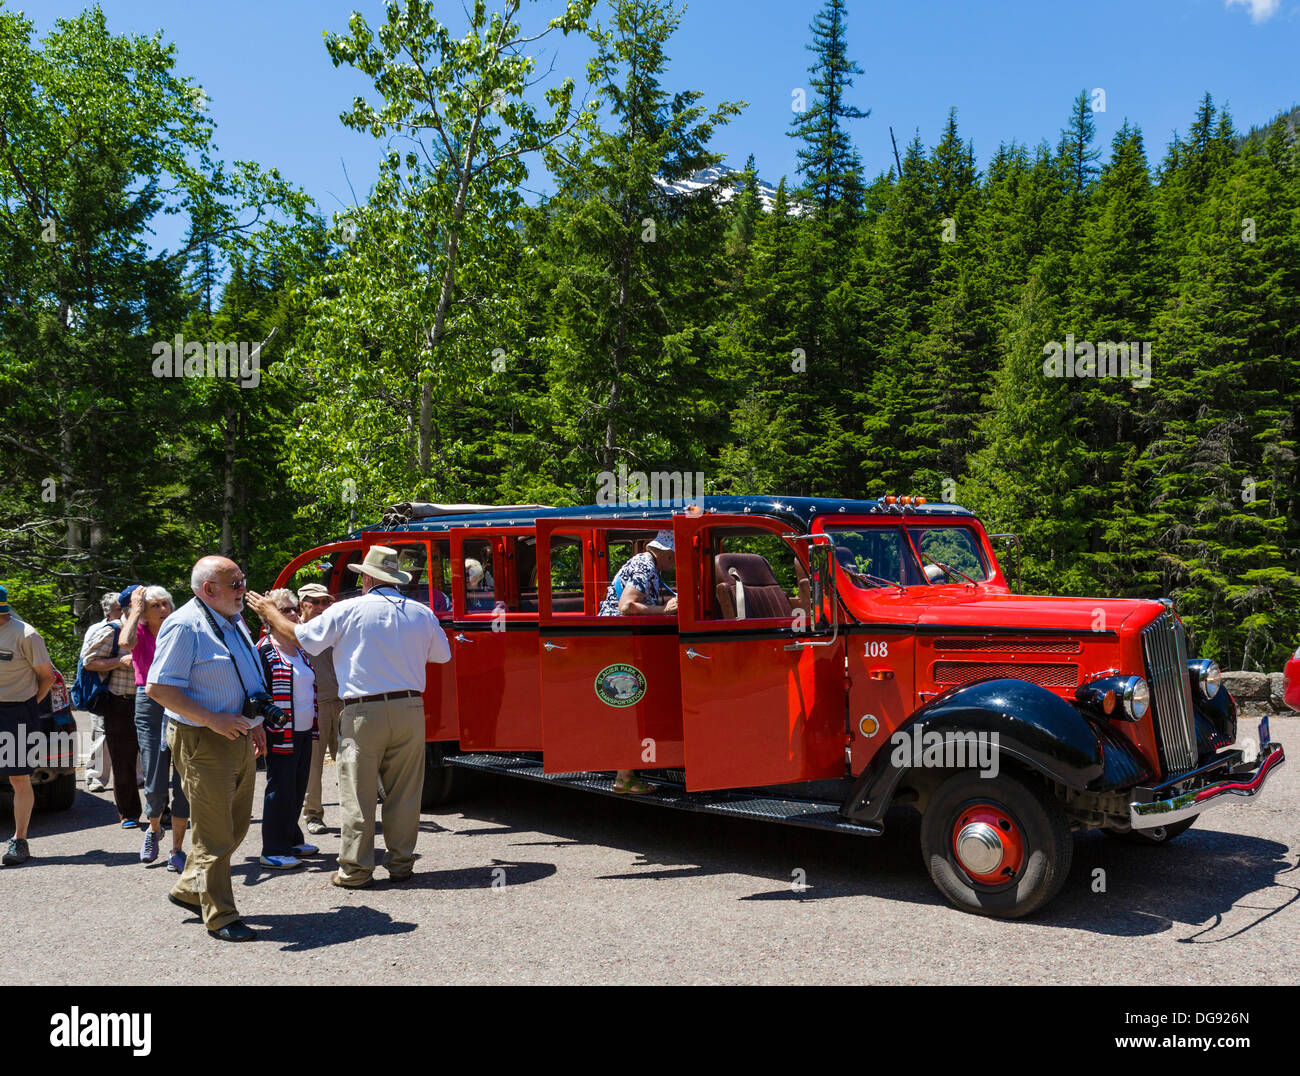 Tourists on the Red Bus Tour at McDonald Falls, Glacier National Park, Montana, USA - Stock Image